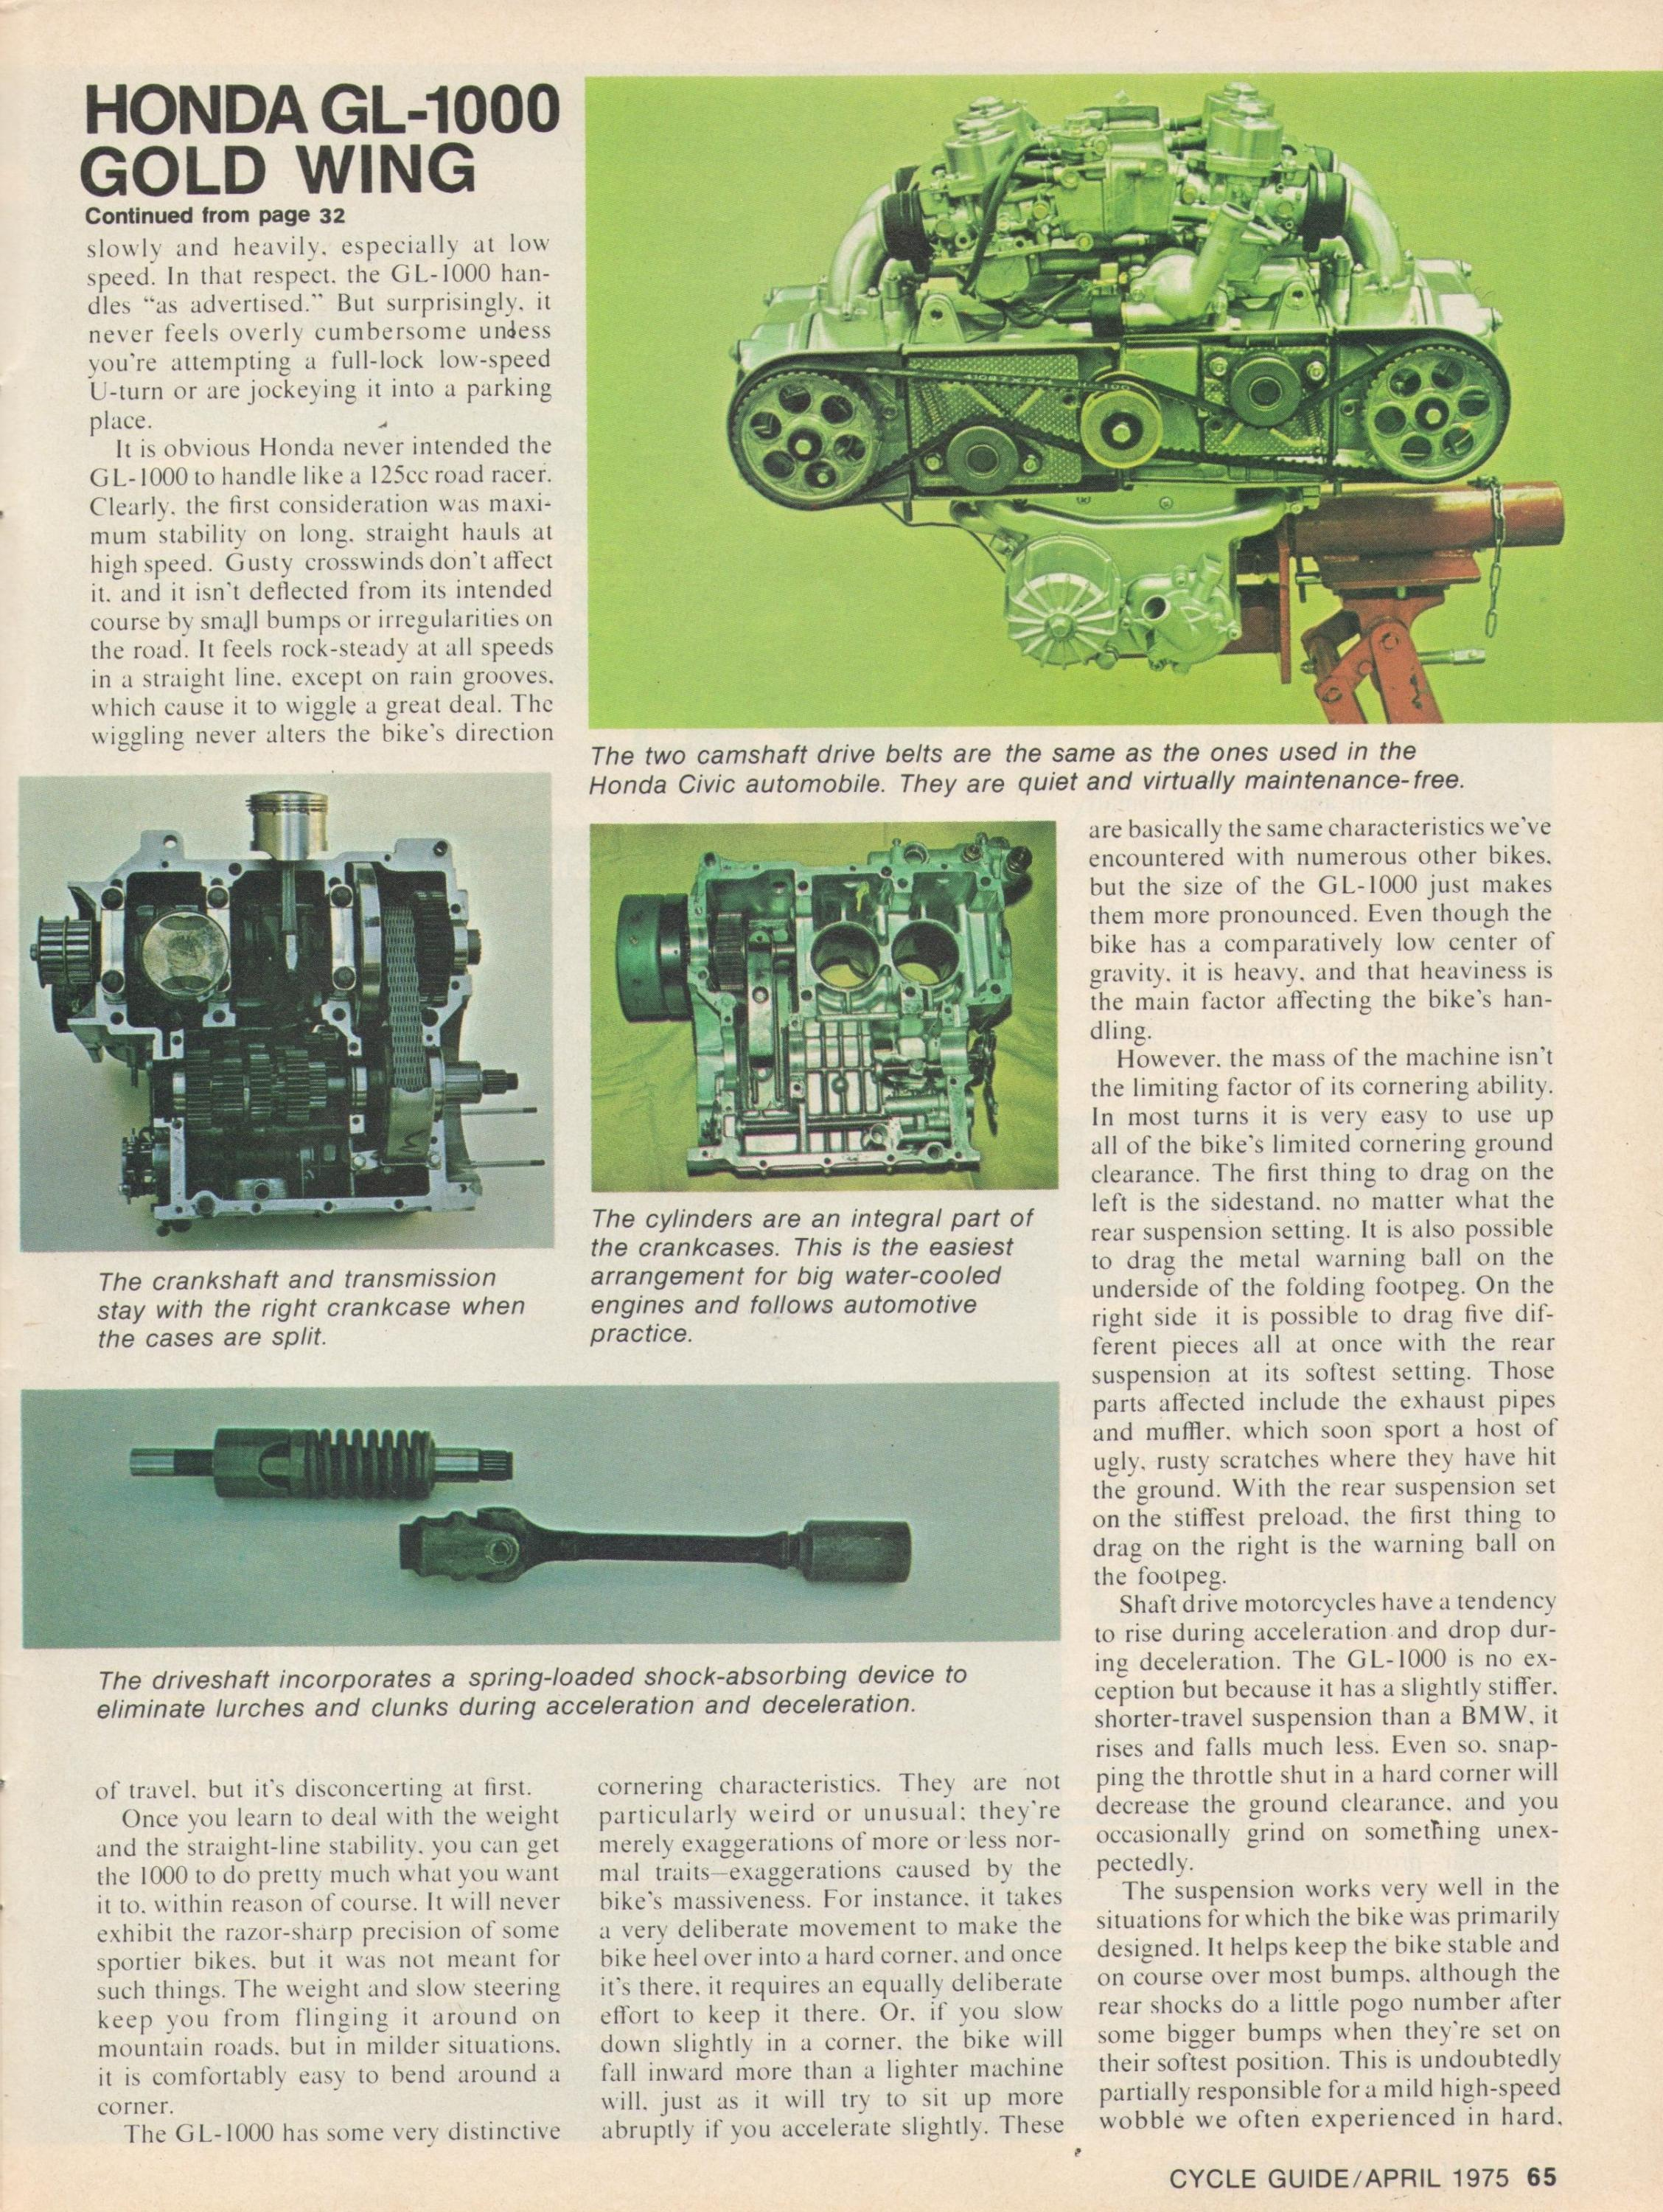 1975 GL-1000 test report Cycle Guide Magazine April 1975-1975-gl-1000-test-report-p.11.jpg